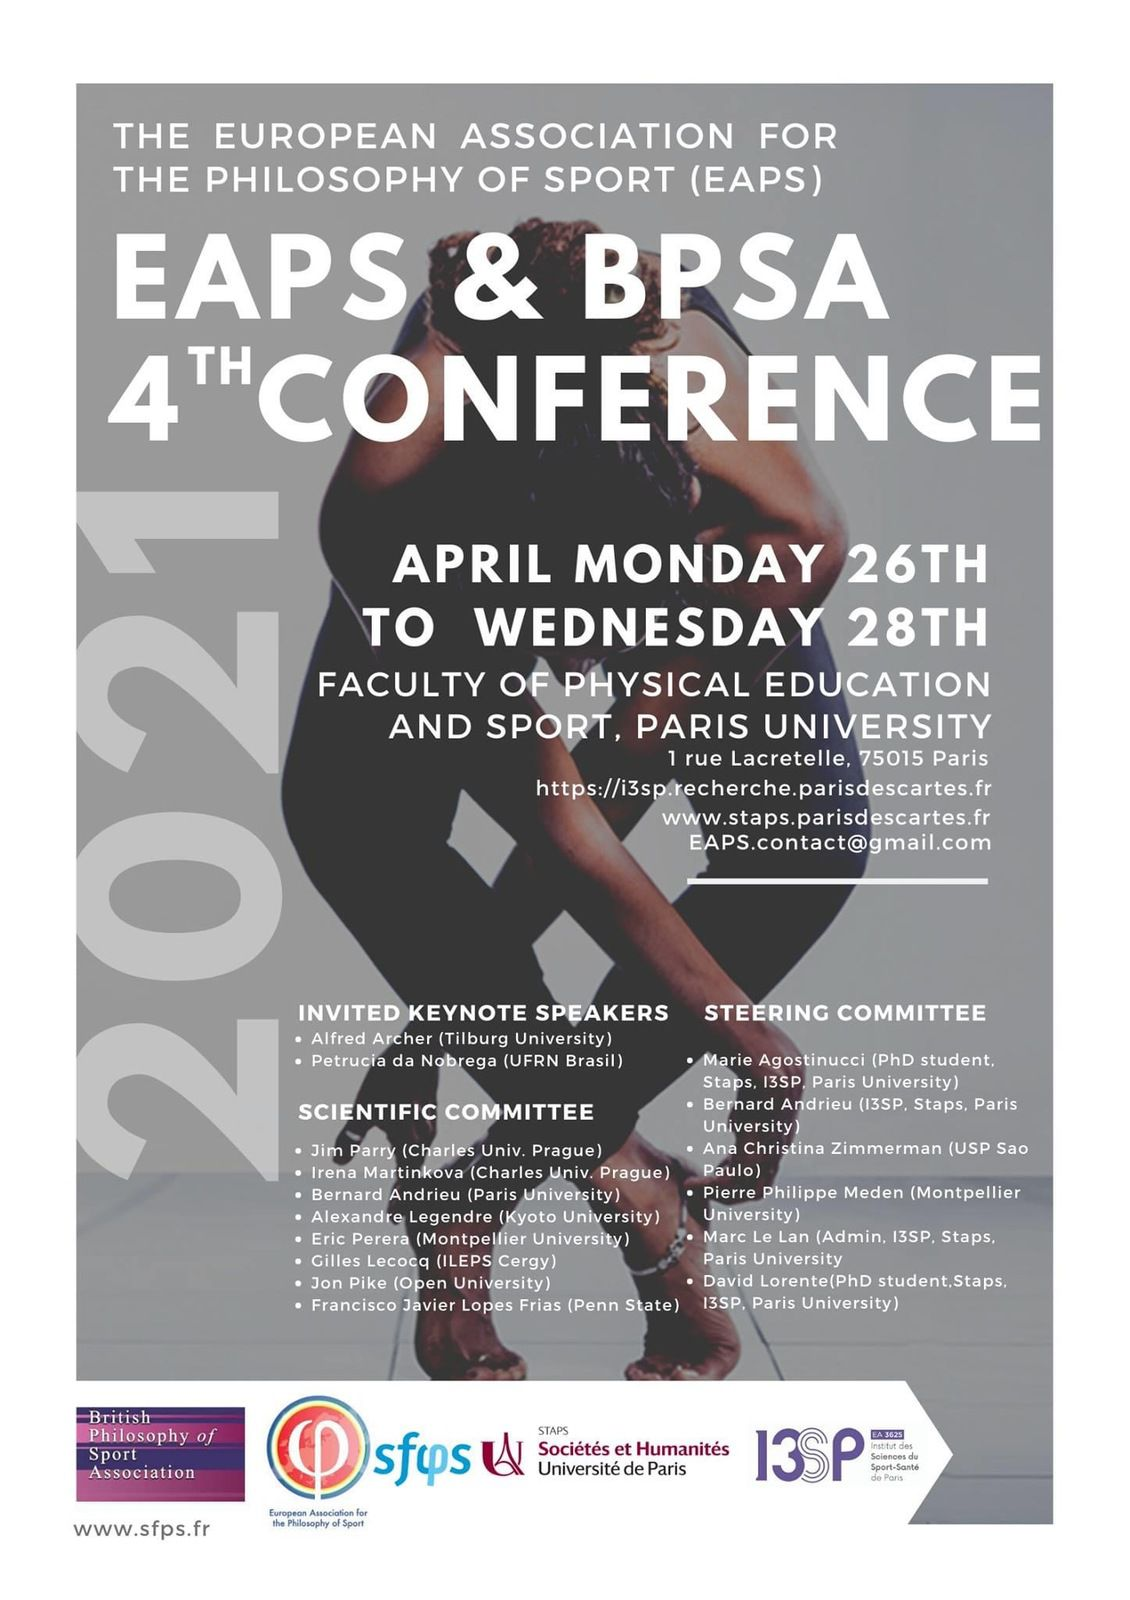 Congrès de la European Association Philosophy of Sport